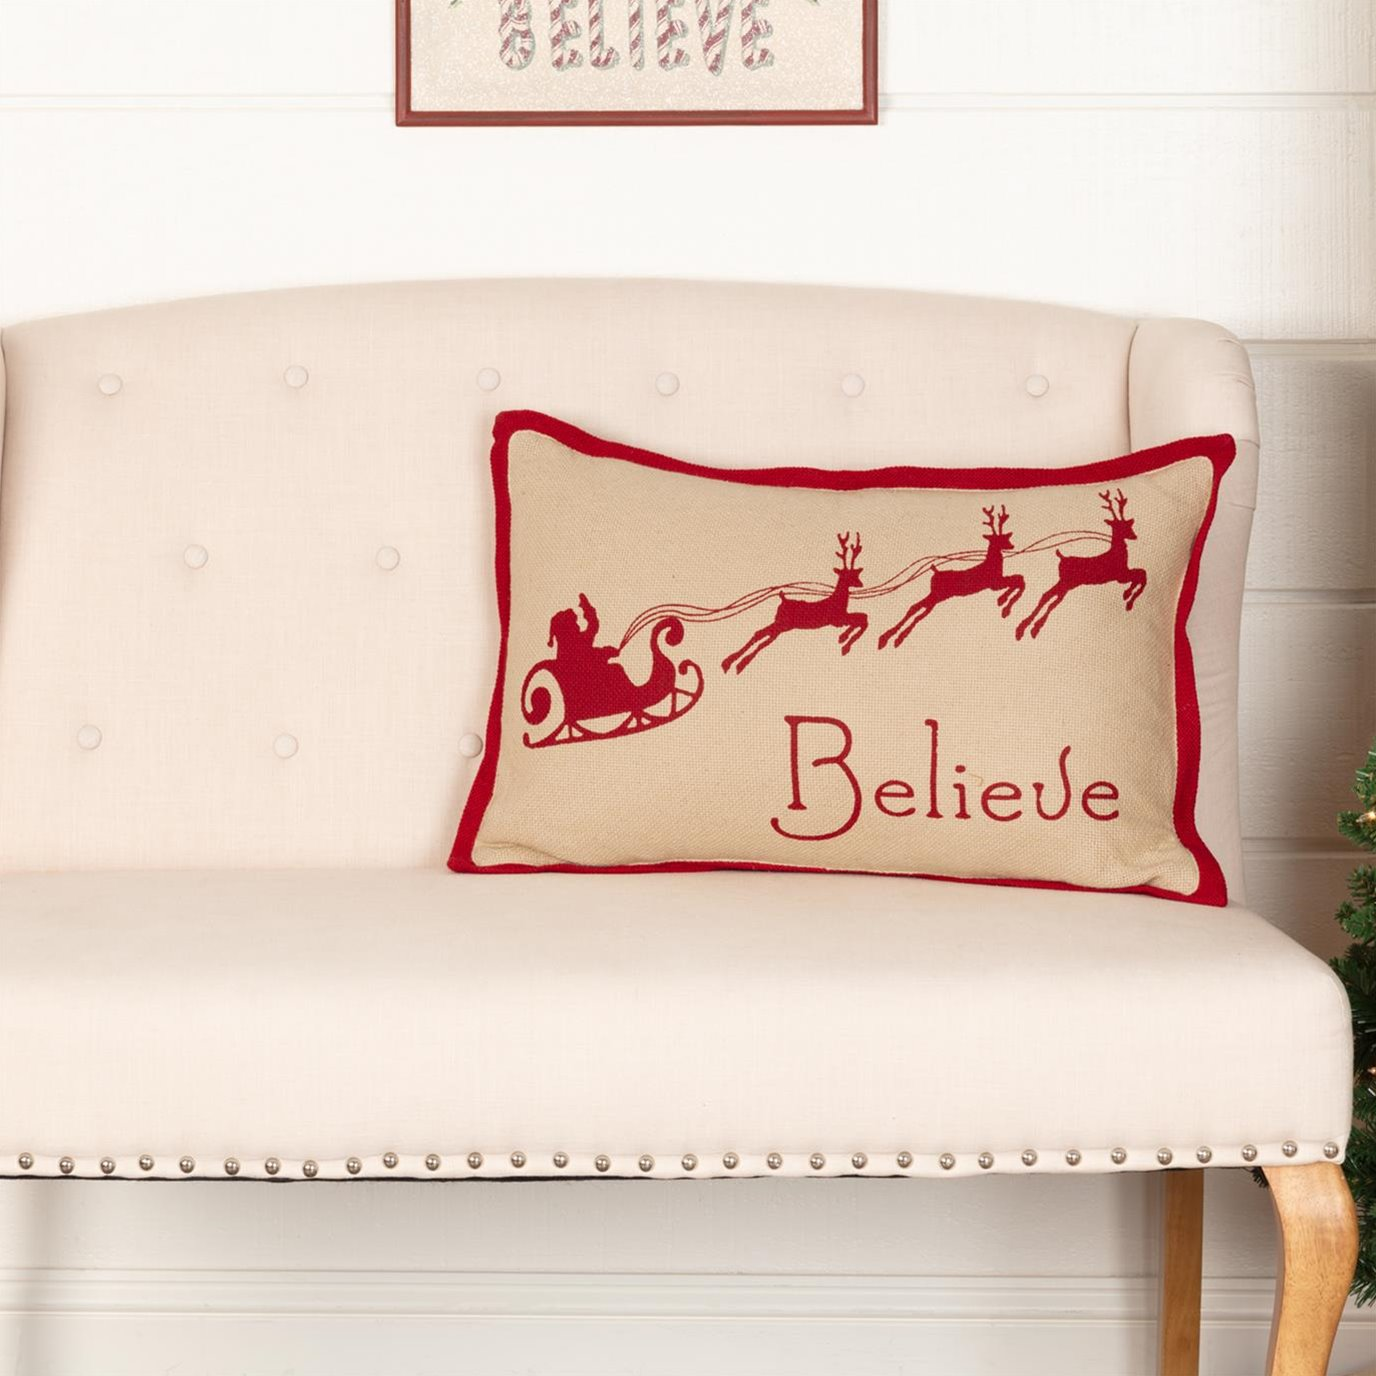 Burlap Santa Believe Pillow 14x22